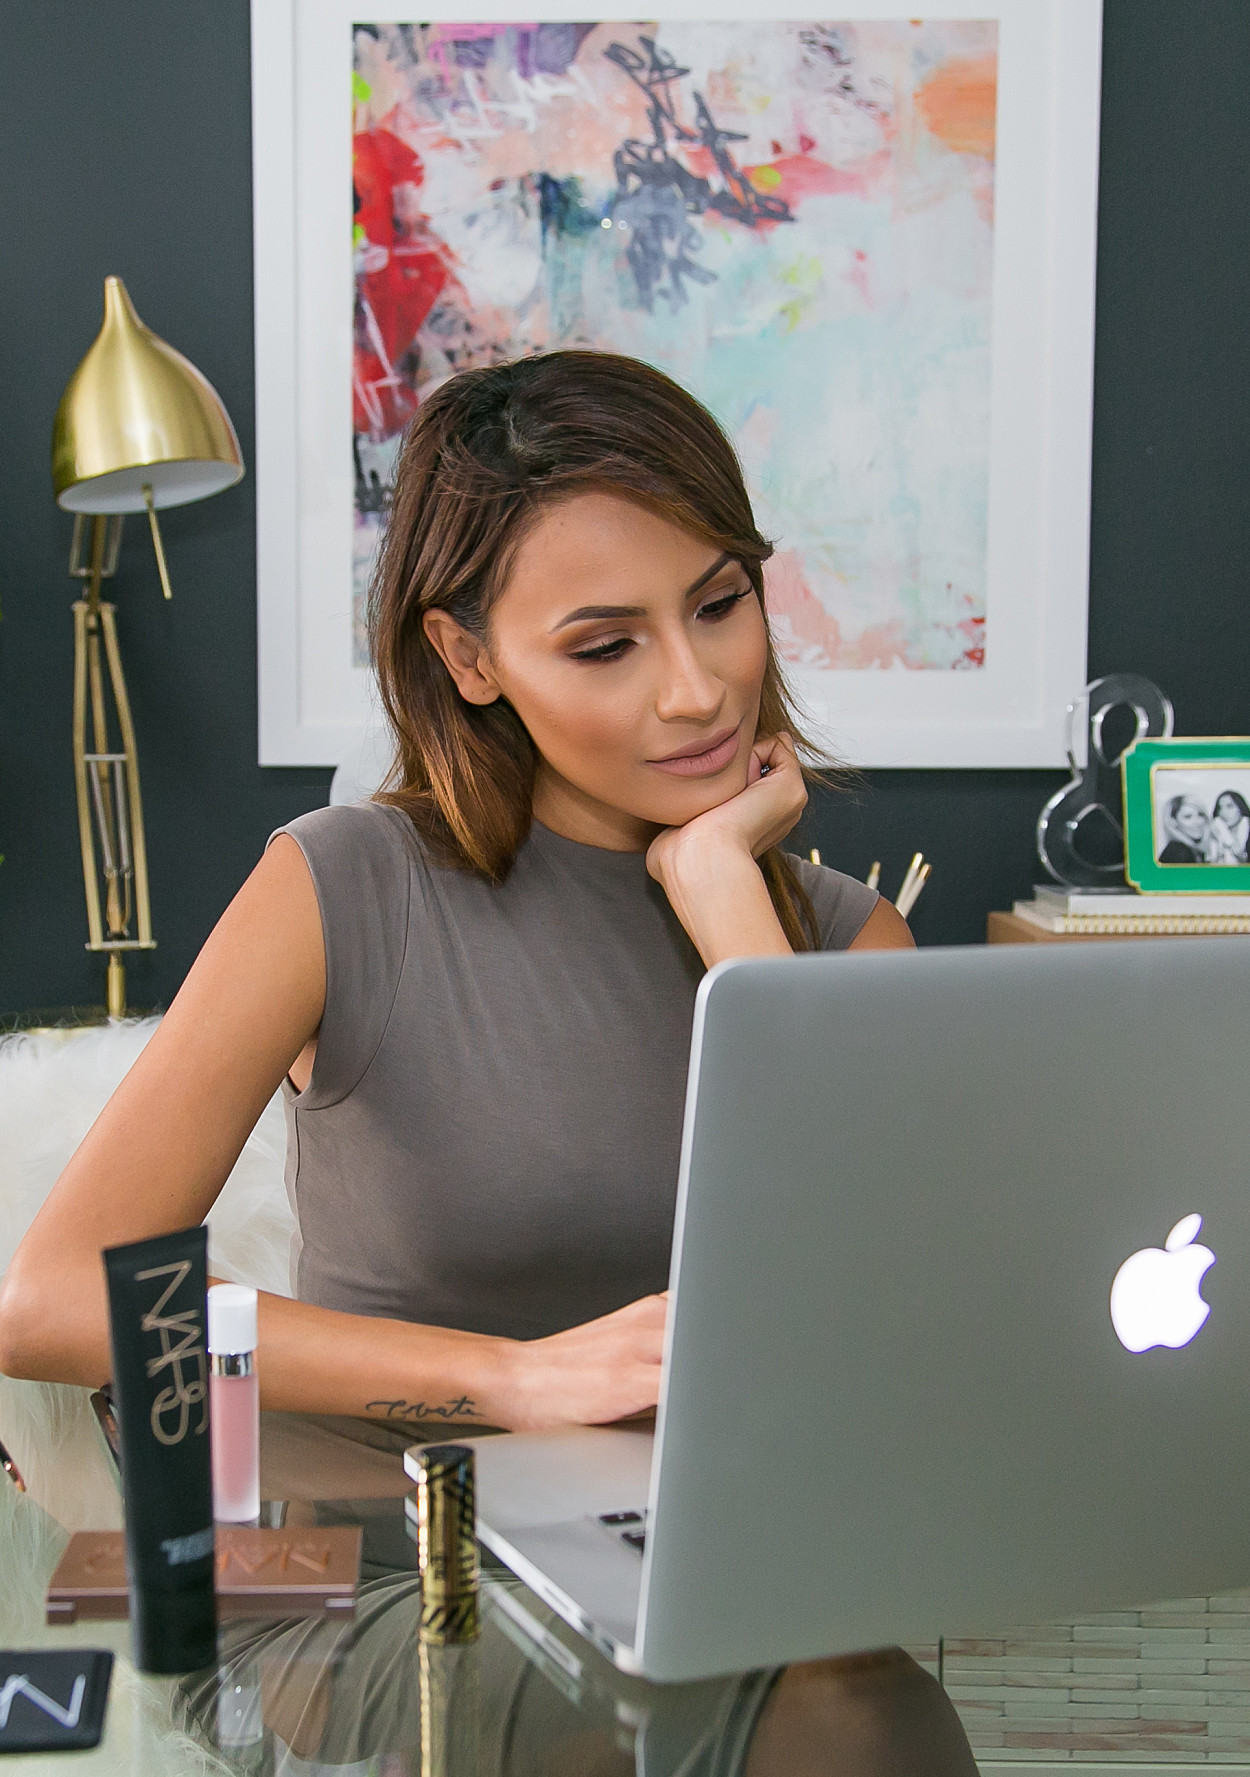 Beauty Blogger Desi Perkins Shows Off Her Home Office